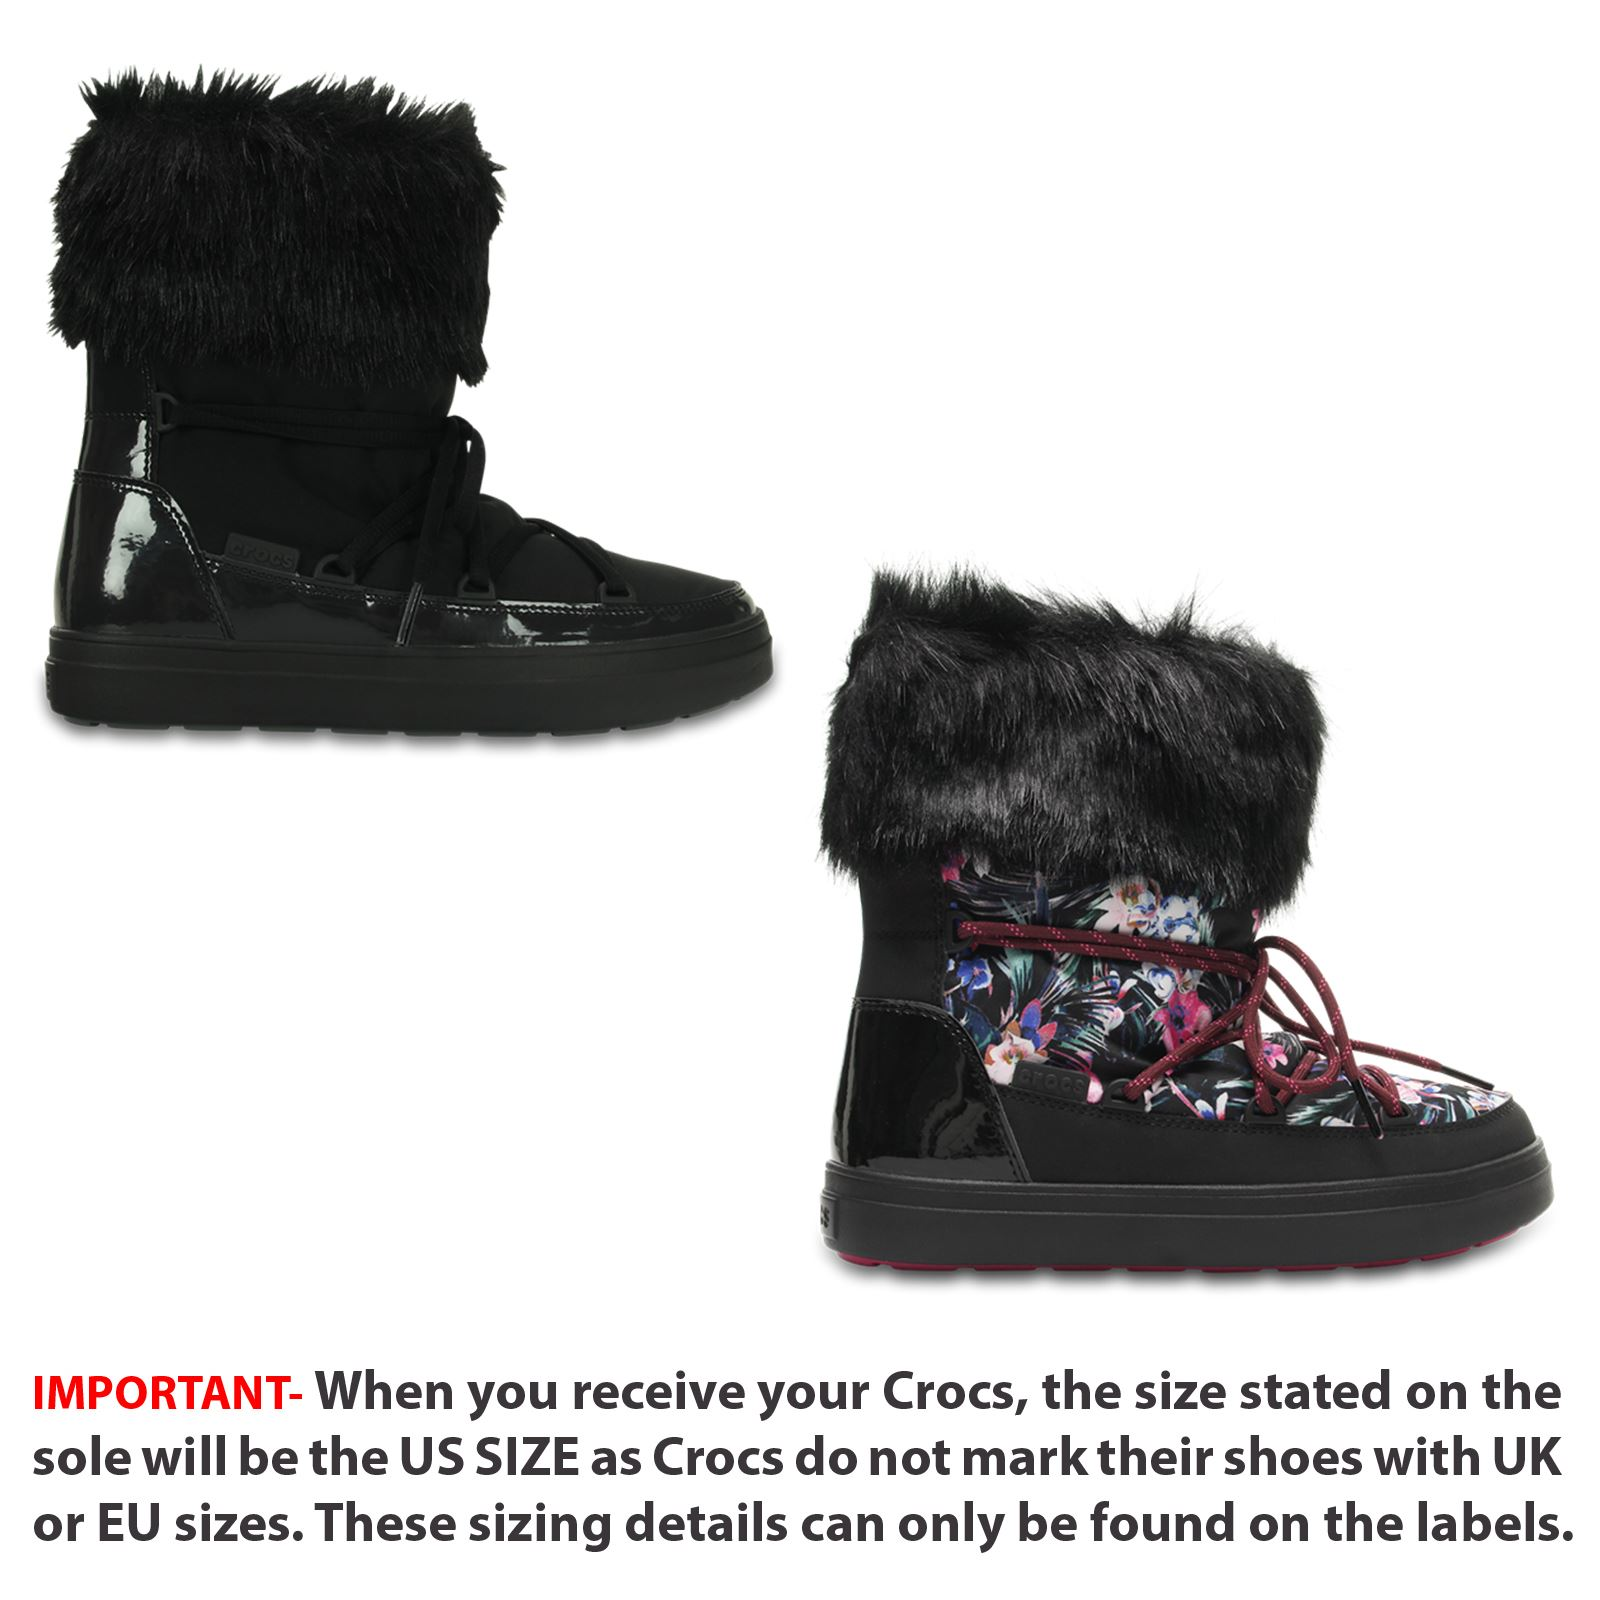 63c2d7f699437d Crocs LodgePoint Graphic Lace Roomy Winter Warm Boots in Flower Print Black